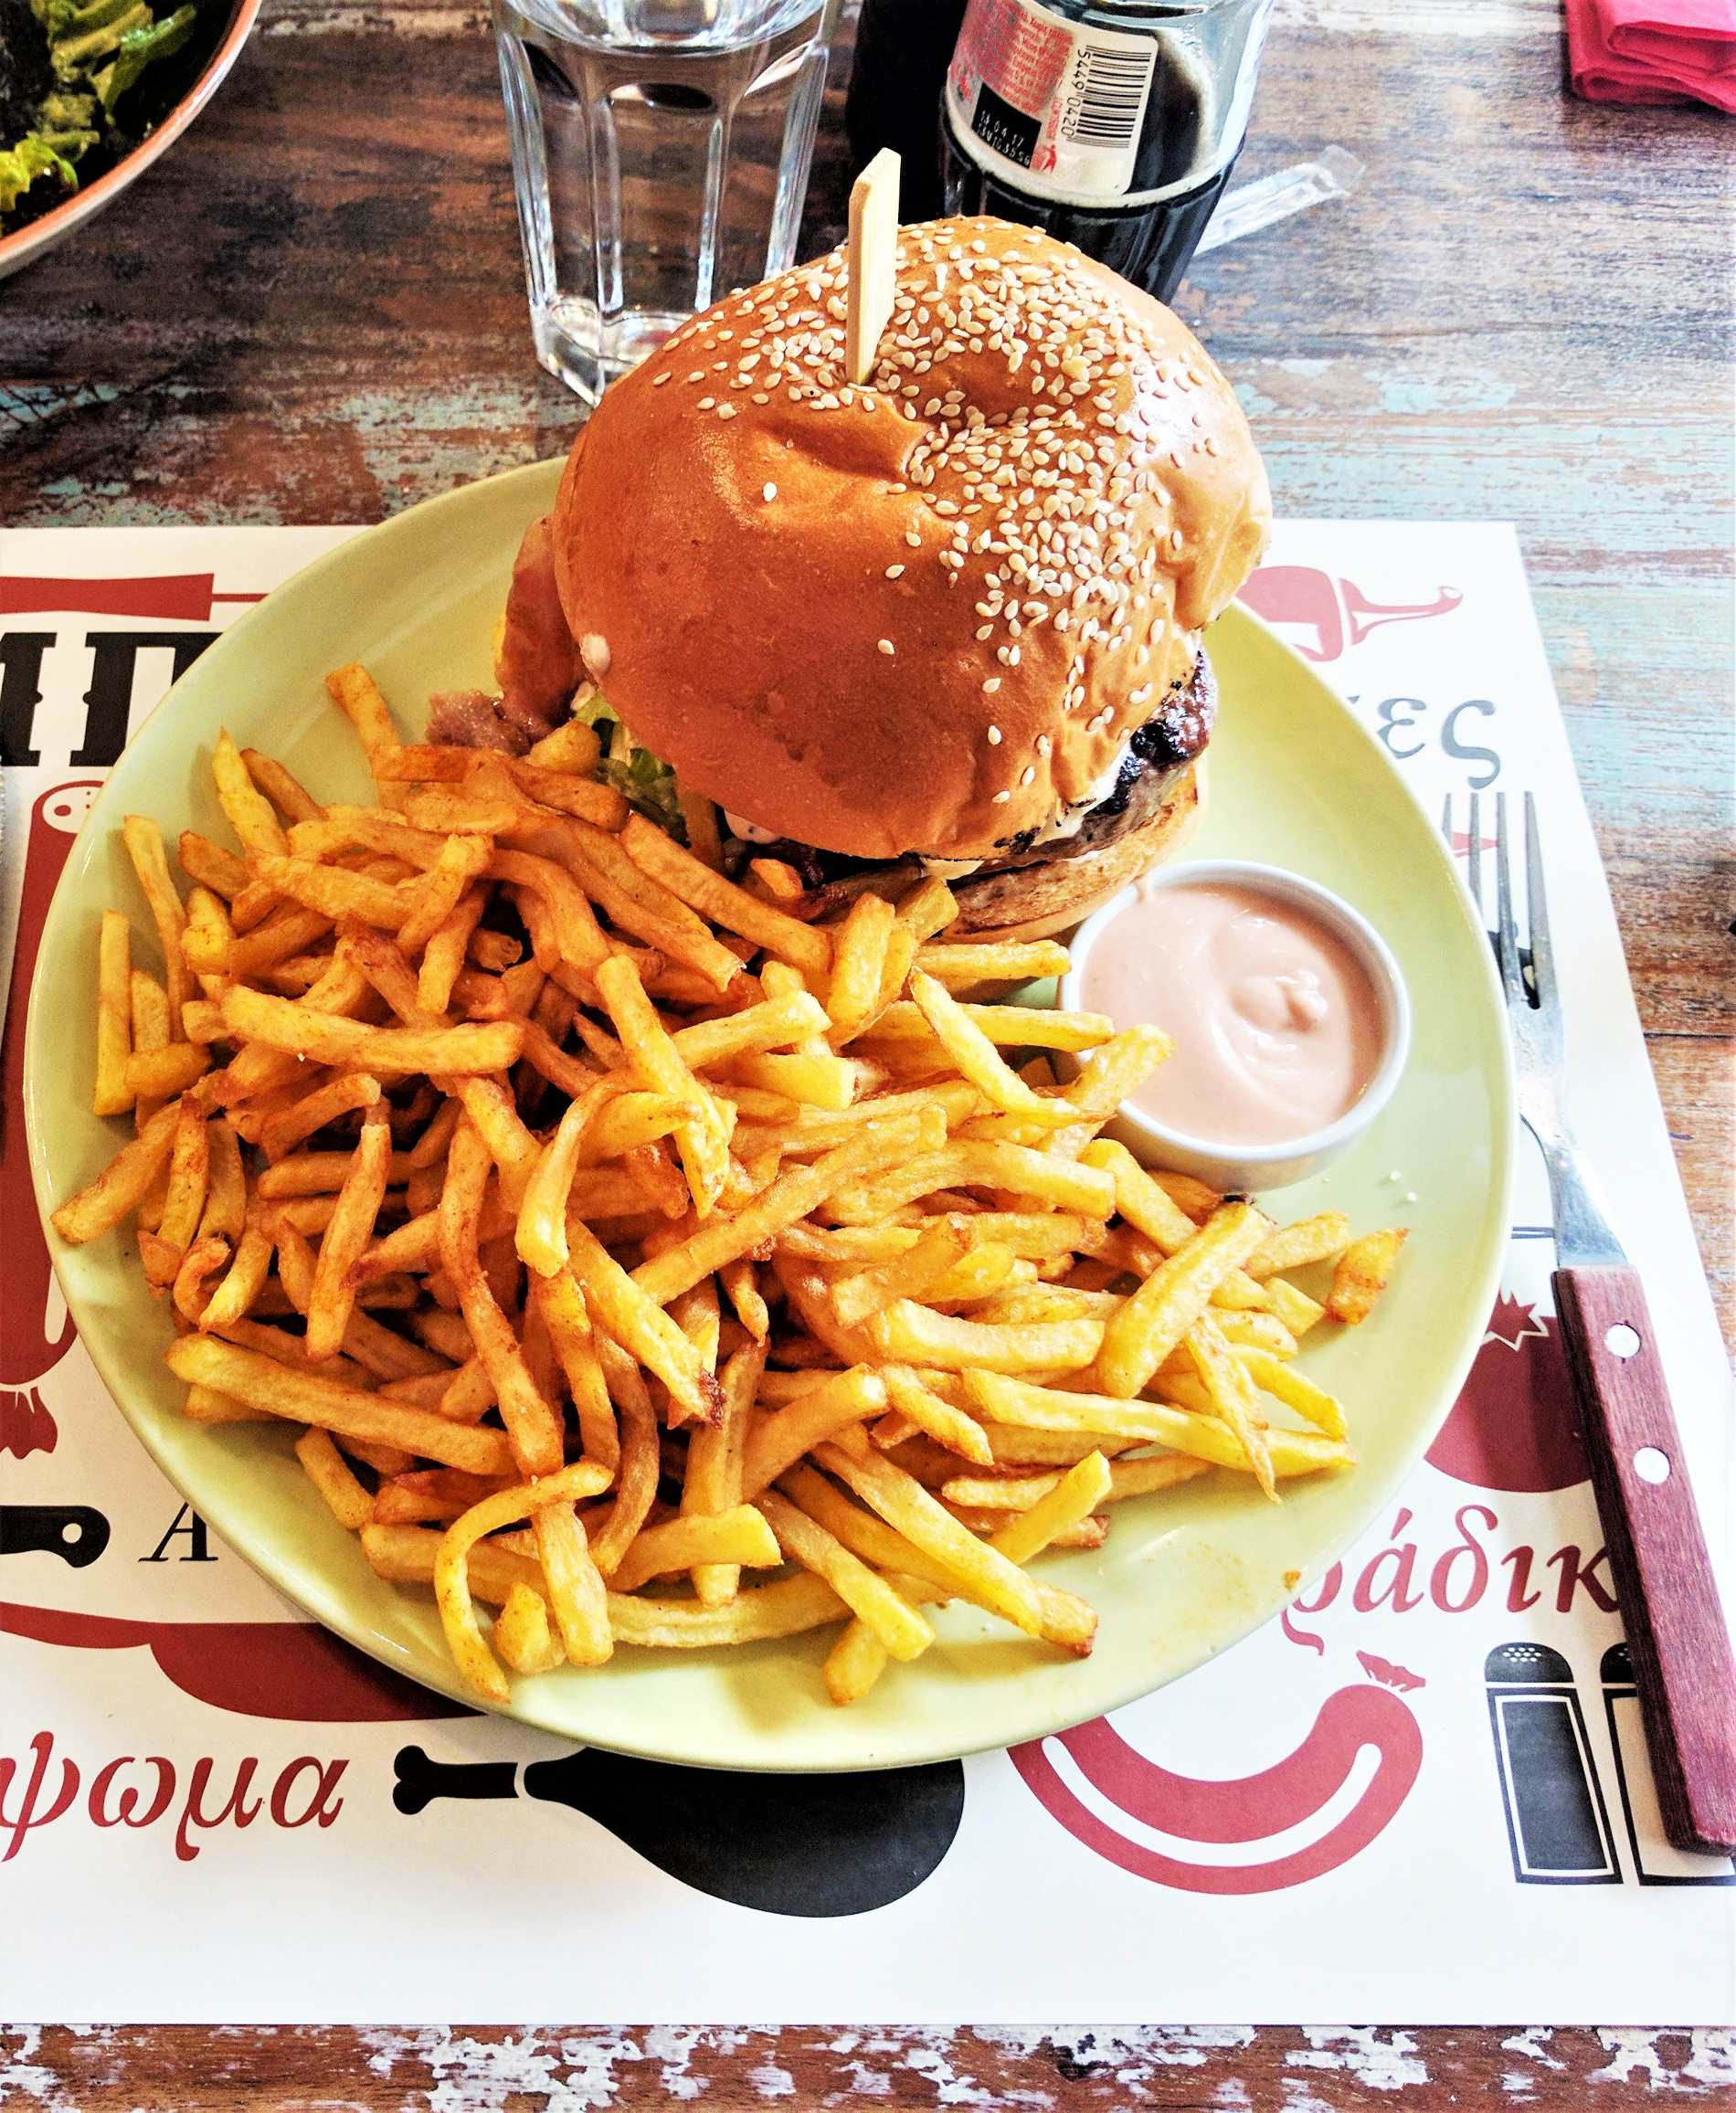 Mpar Mpee Kiou  in Piraeus has been listed in the top 10 burger places in the whole world. Source: Truevoyagers